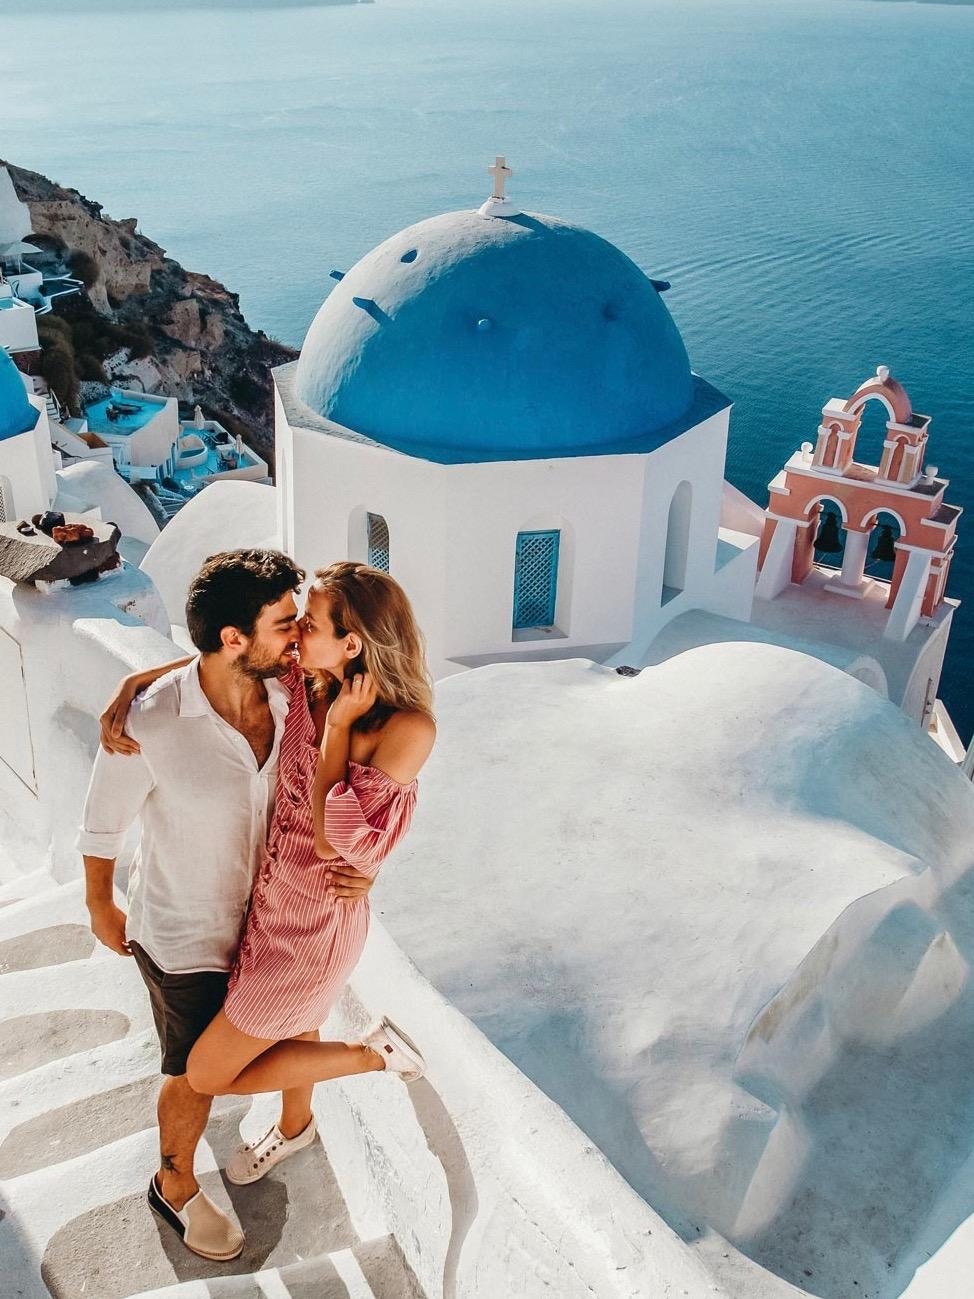 Greece Vacations - Transat and Total Advantage Travel